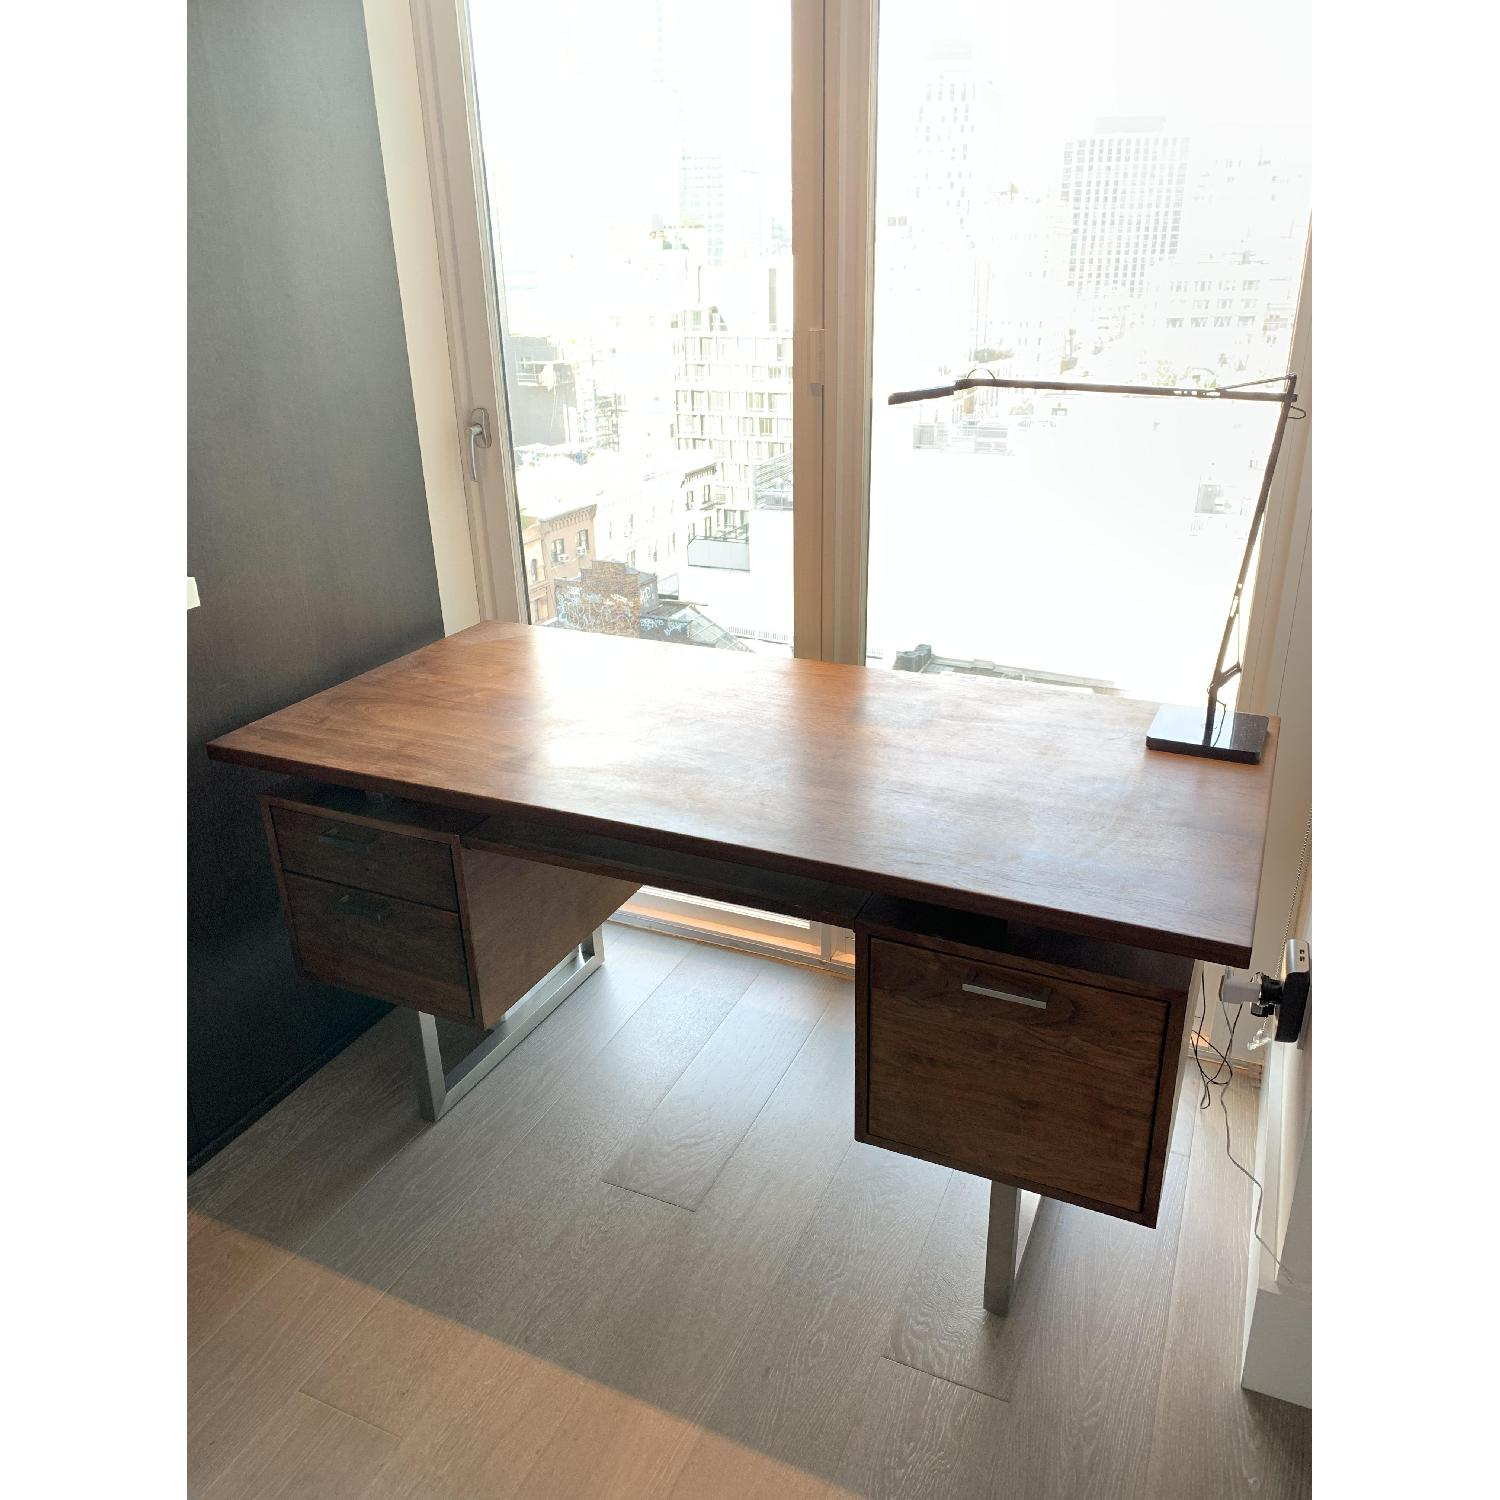 Crate & Barrel Clybourn Desk - image-1